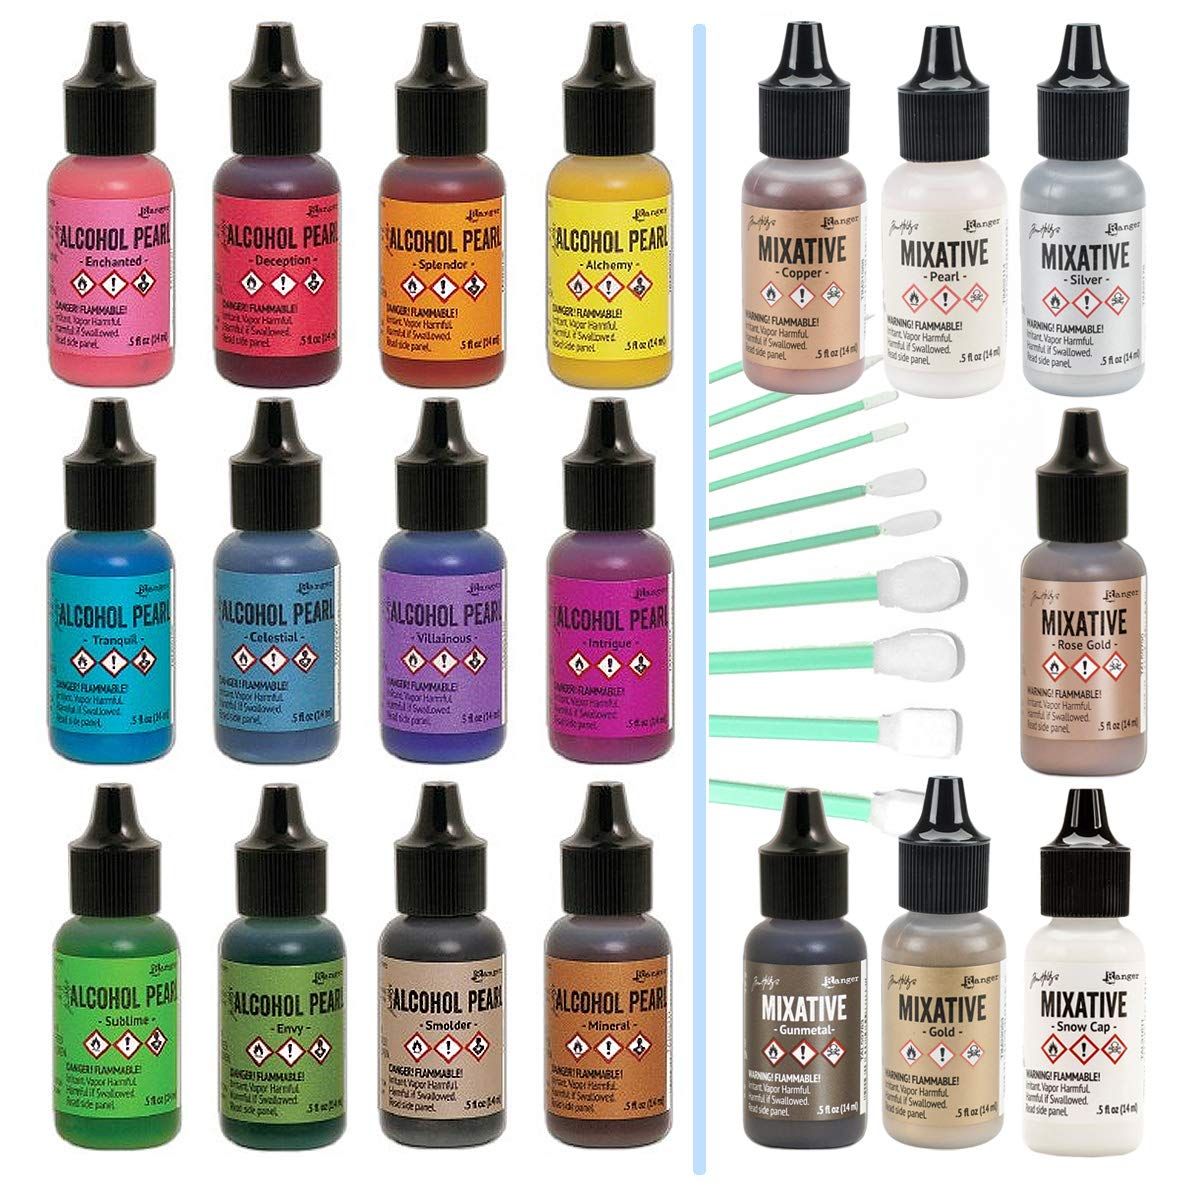 Ranger Tim Holtz Alcohol Pearls Complete Set Bundle (All 12 Colors), Ranger Tim Holtz Alcohol Ink Mixatives (All 7 Colors), 10 Pixiss Precision Ink Blending Tools by GrandProducts